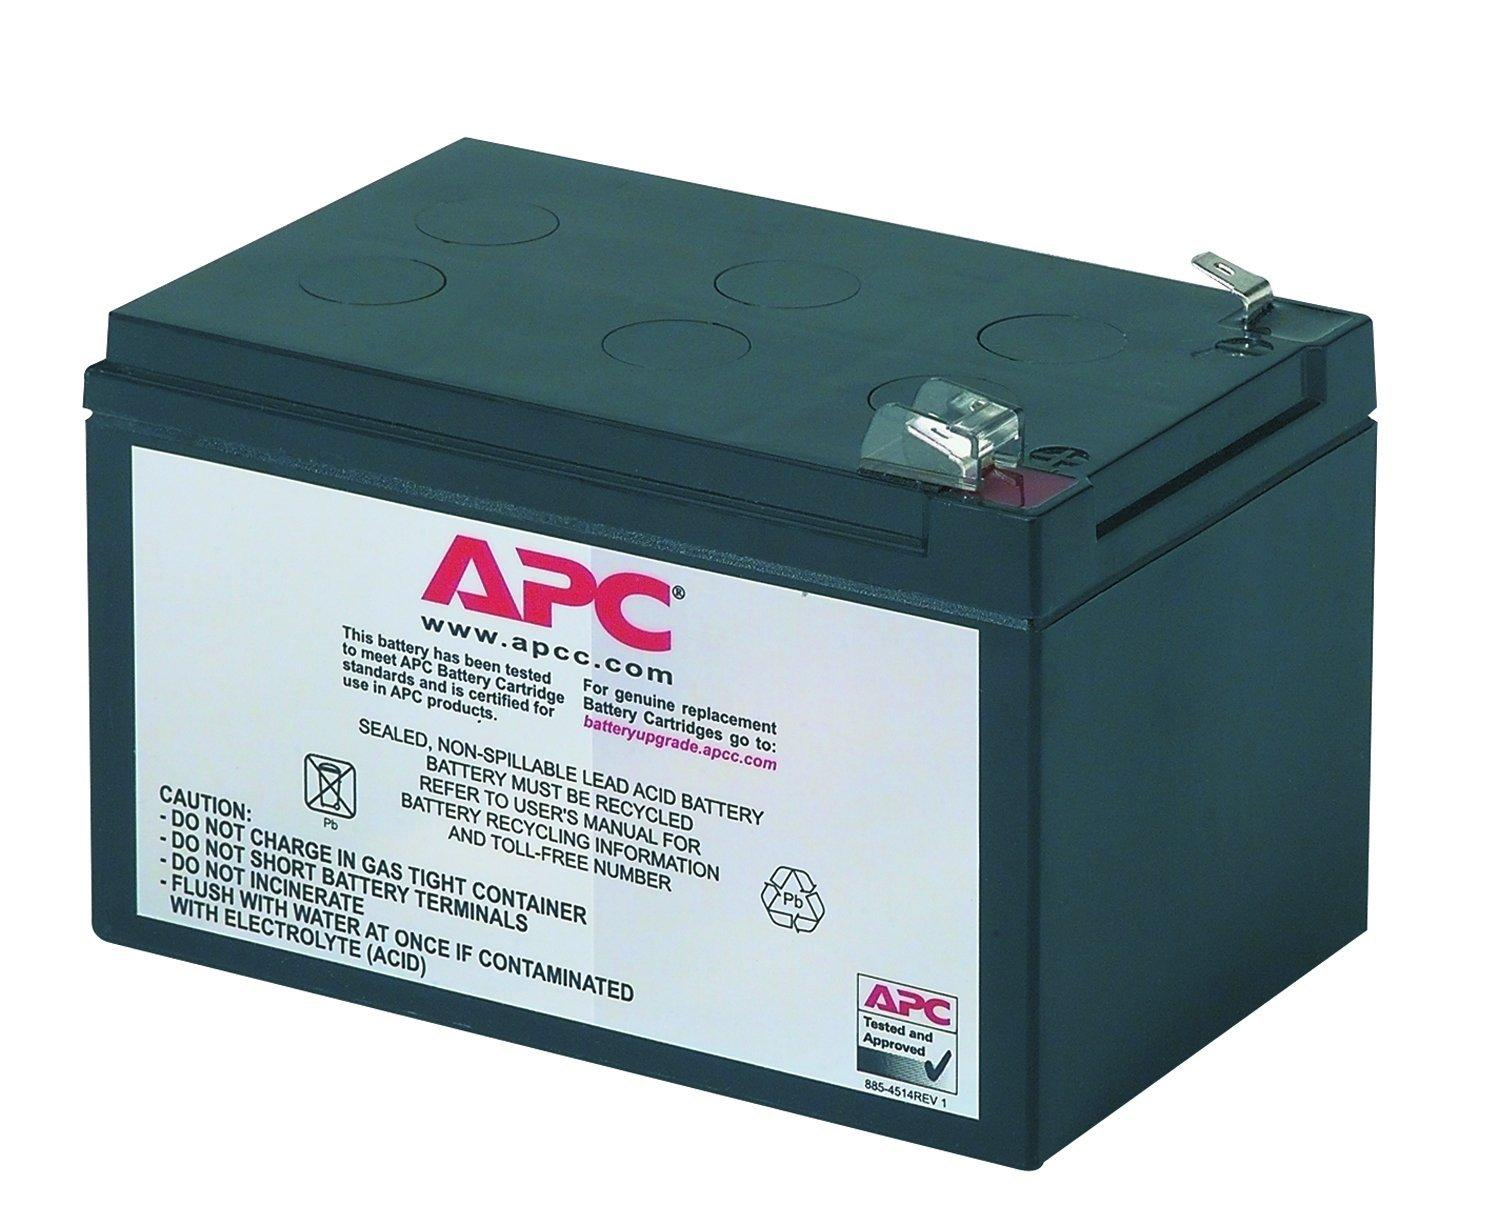 This is an AJC Brand Replacement APC SC620I 12V 12Ah UPS Battery